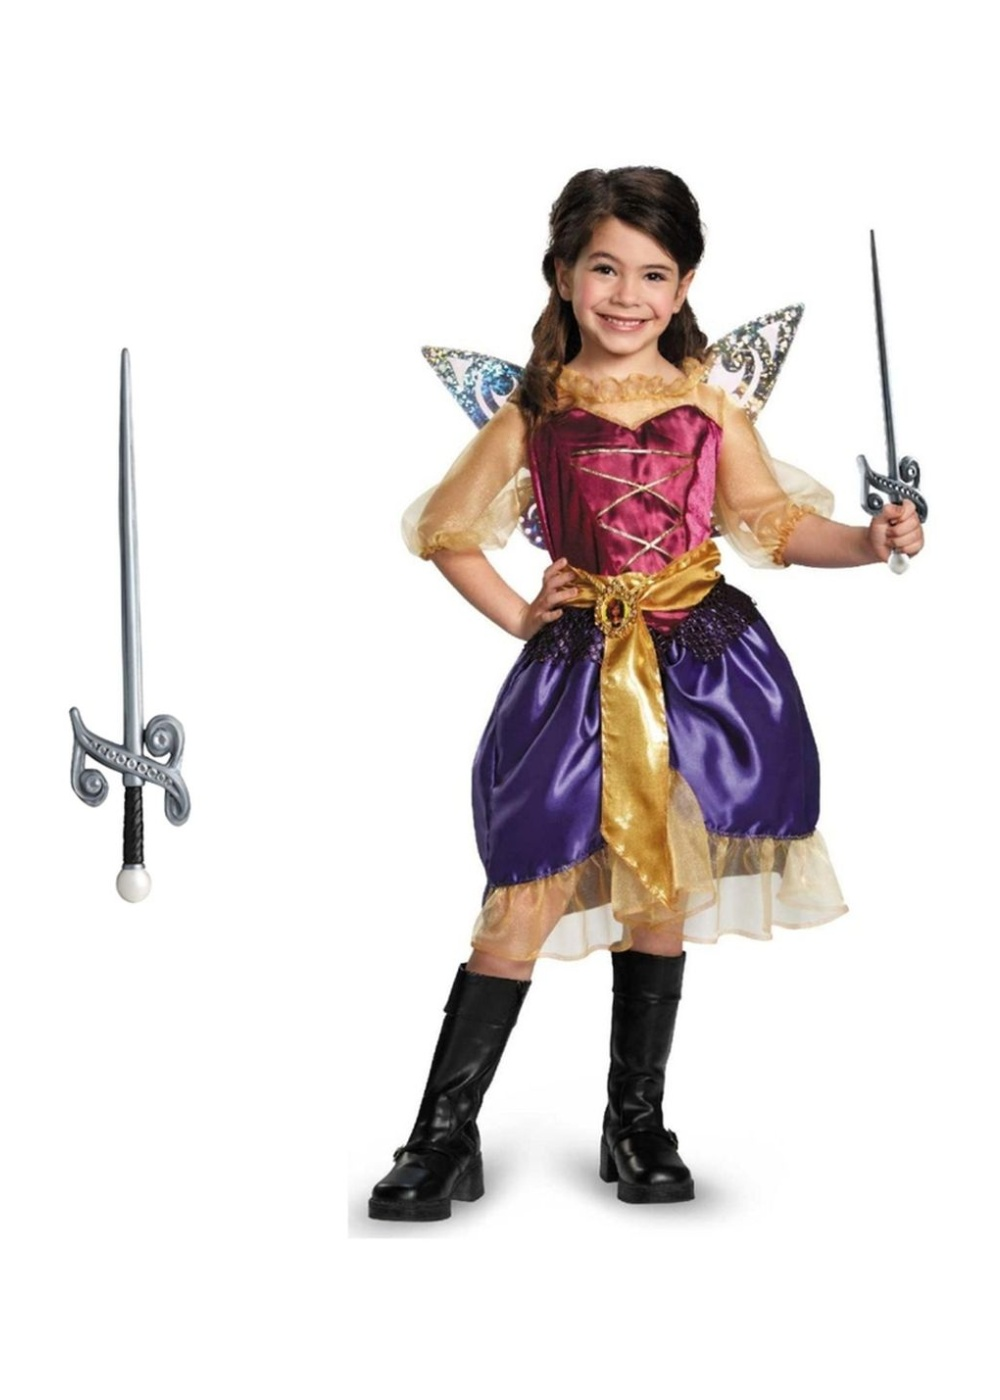 tinkerbell and the pirate fairy girls costume and sword set